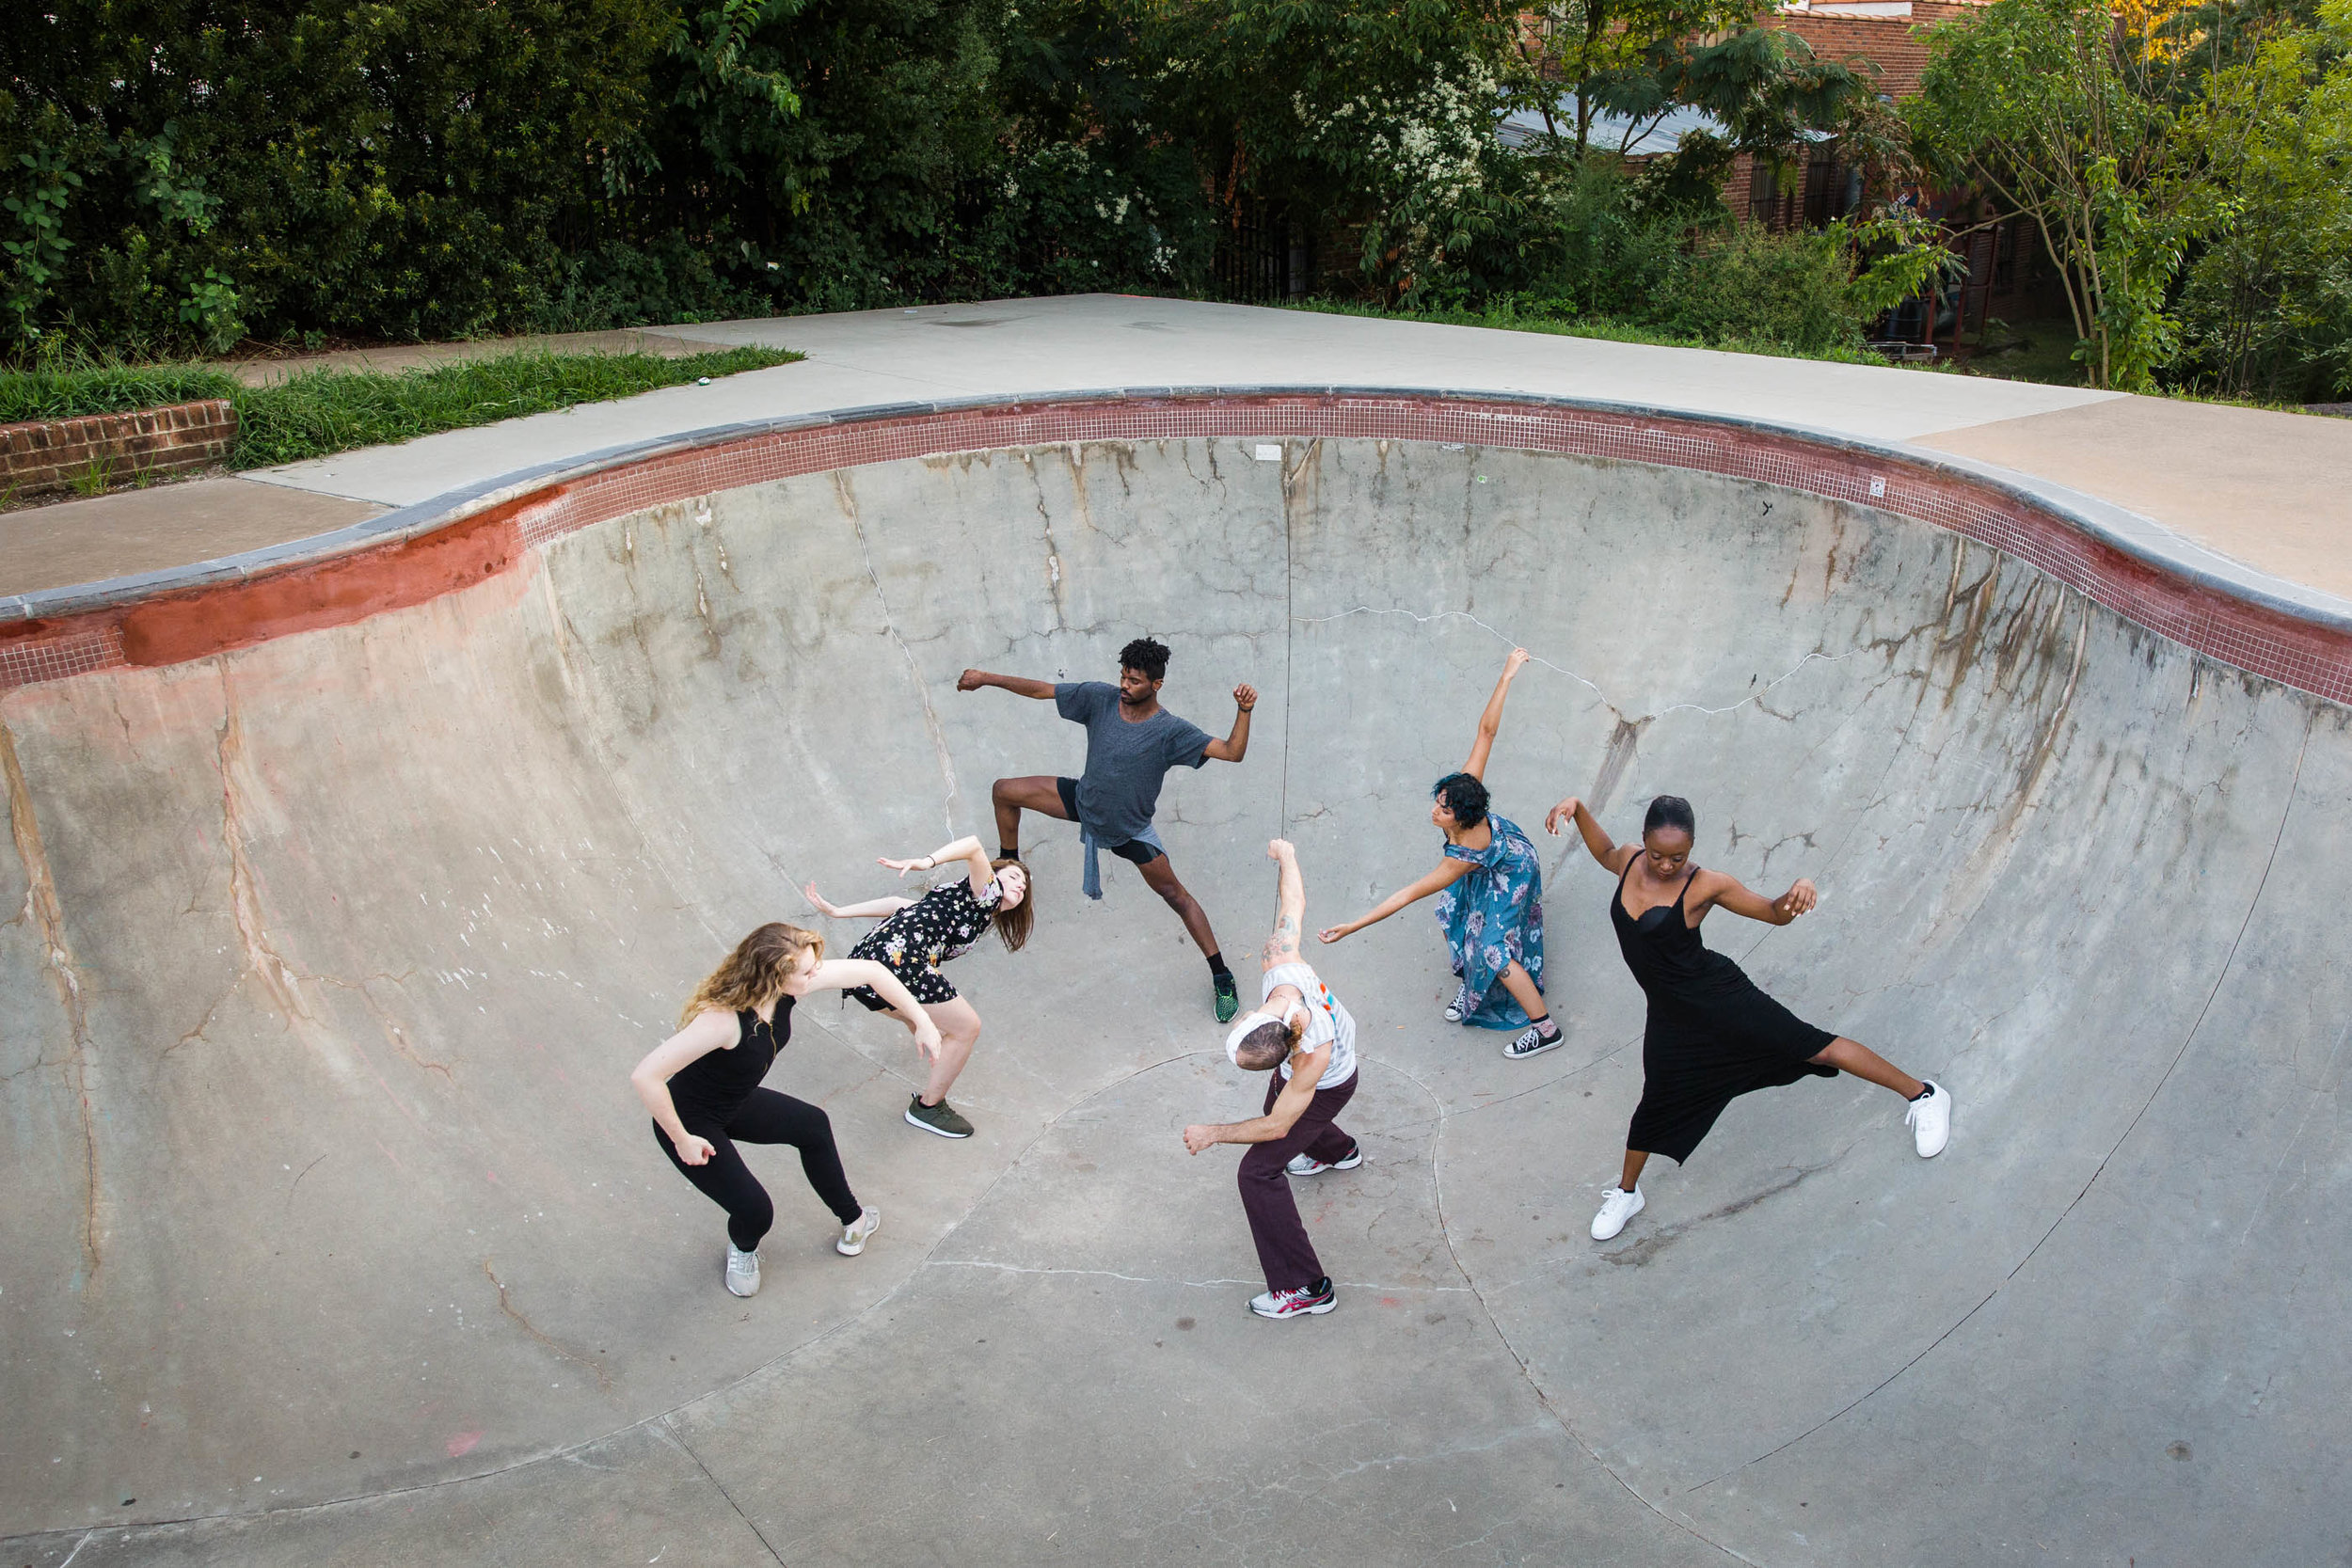 2018_08_25_shals_skate_park_durham_dances_web-selects-8551.jpg